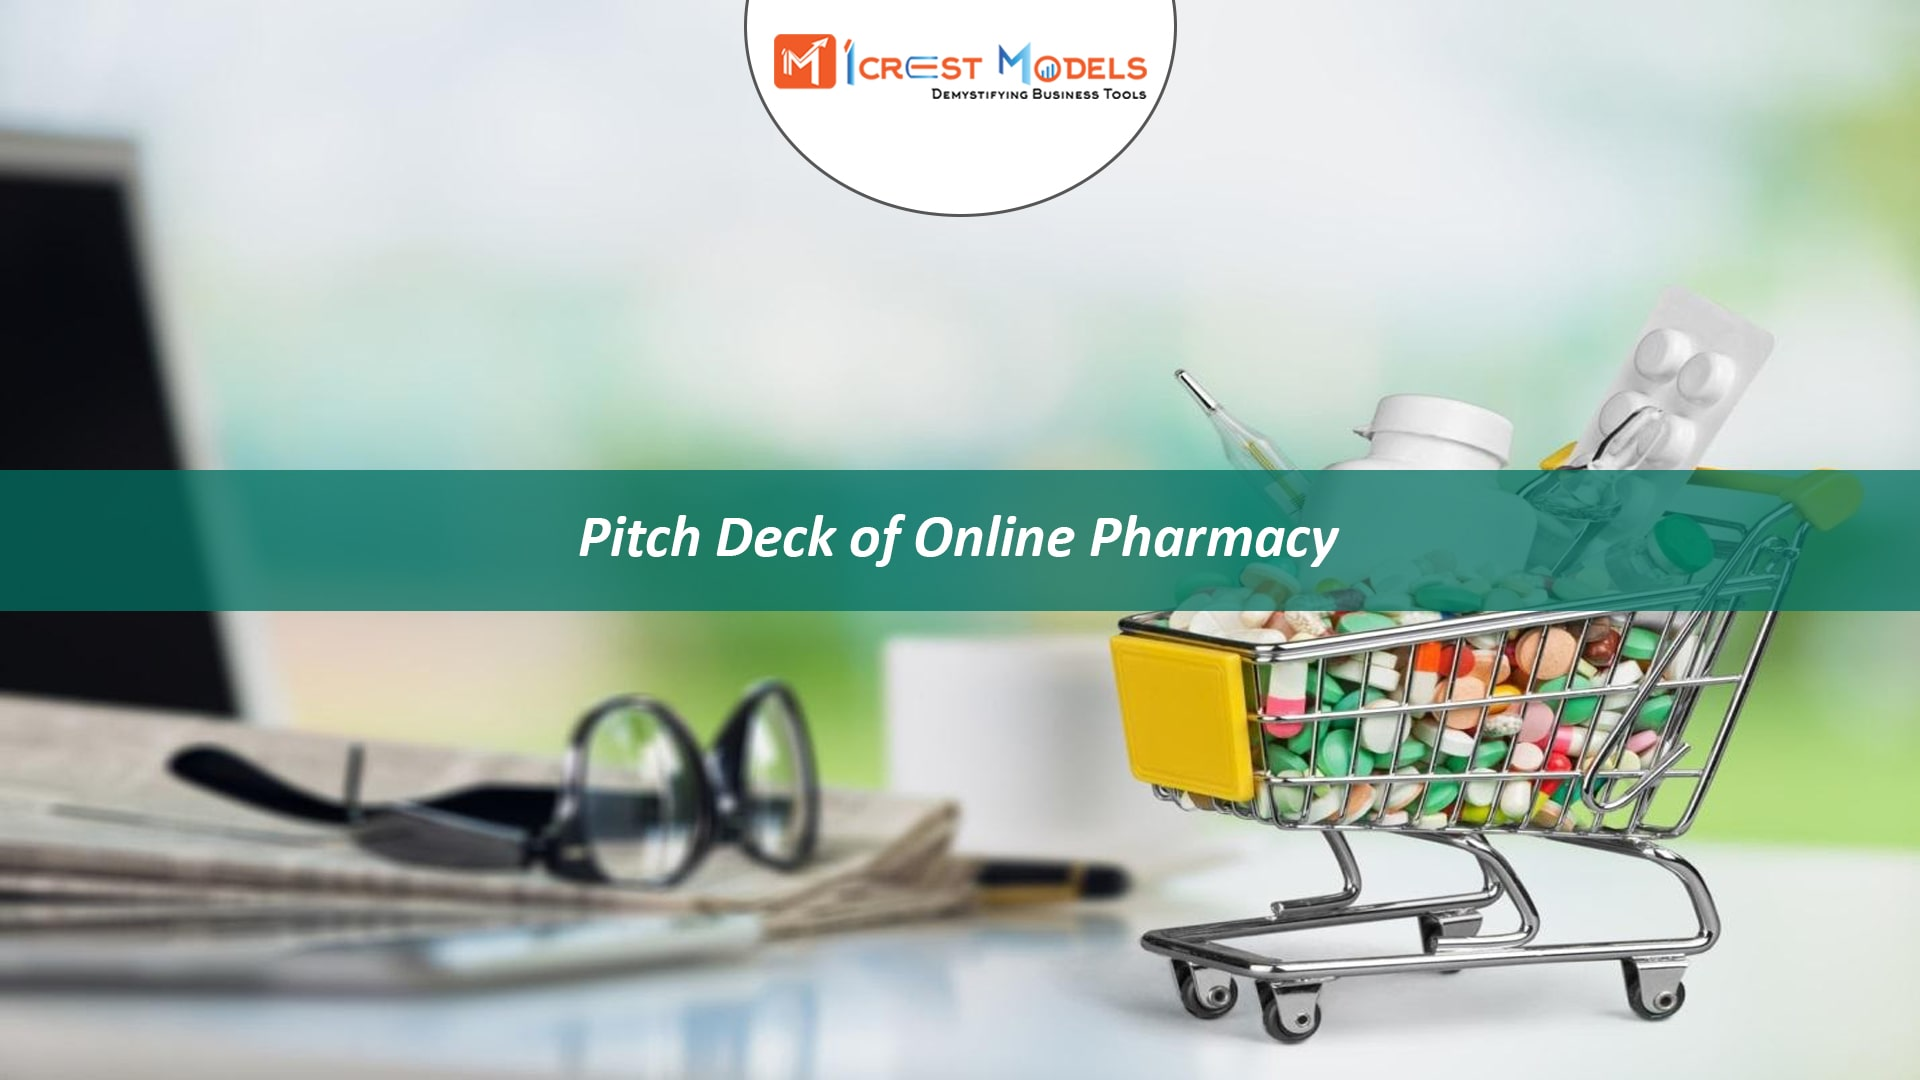 Investor Pitch of E-Pharmacy